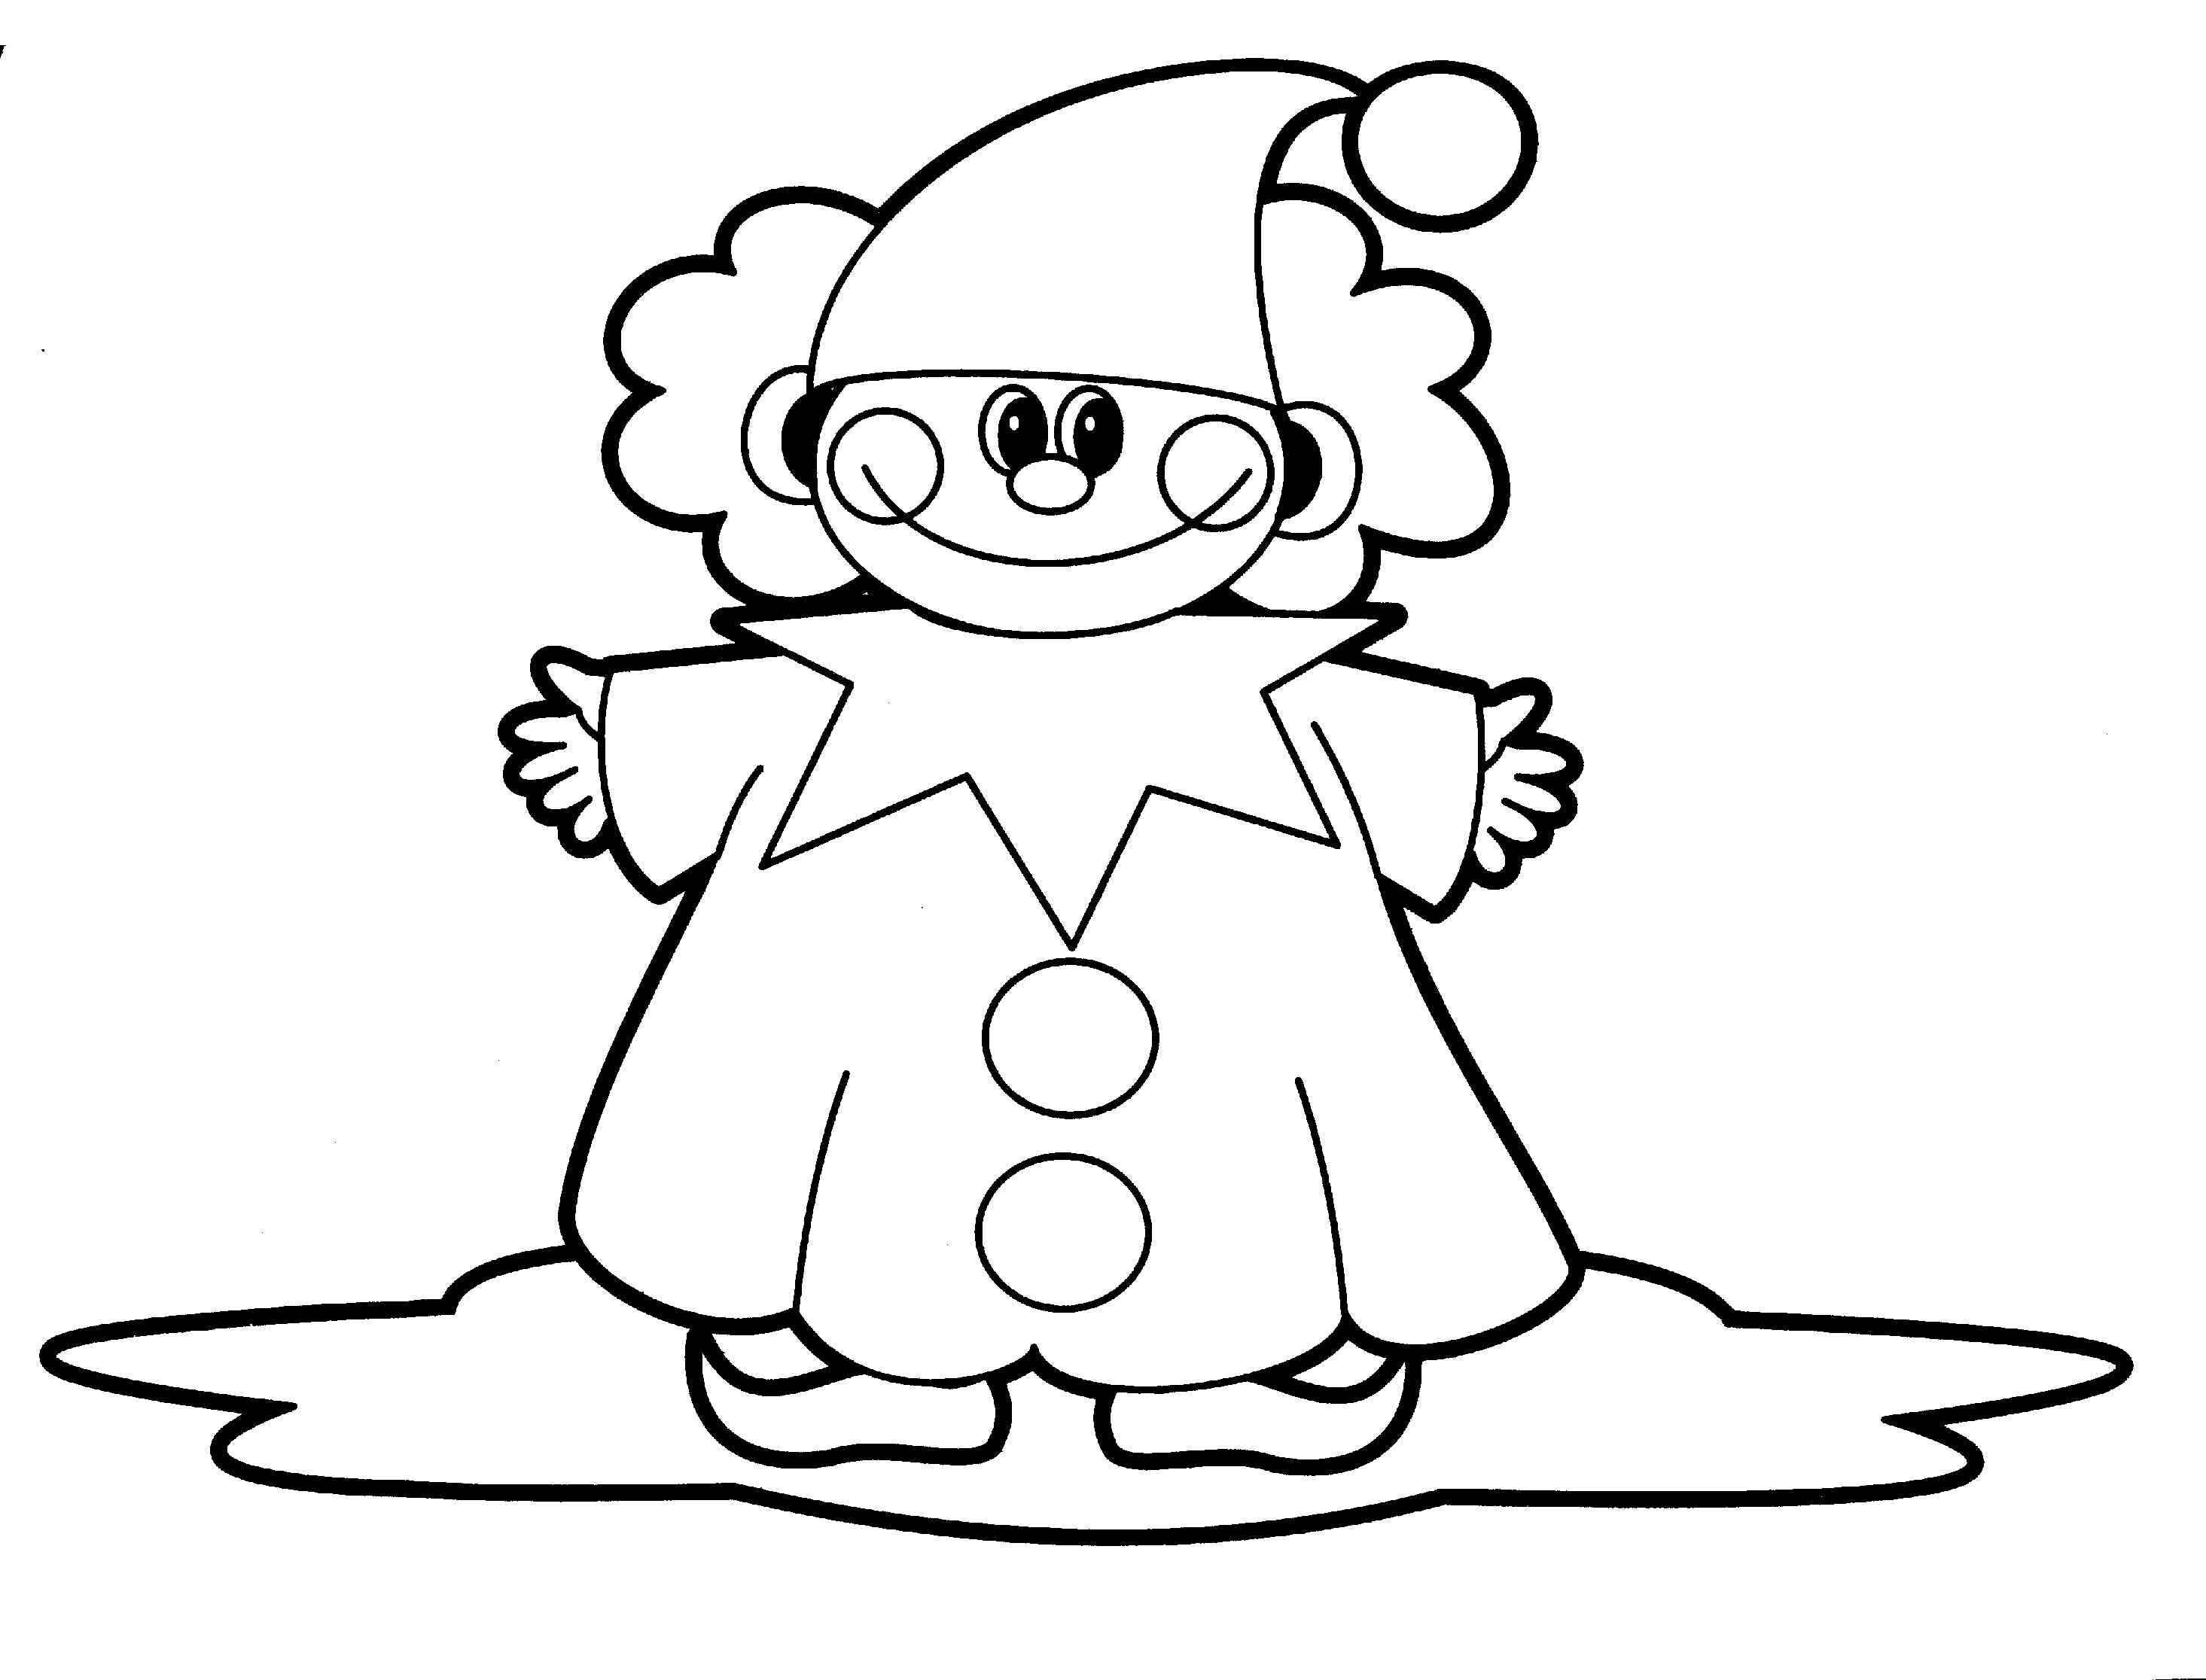 toys coloring pages - coloring page toys